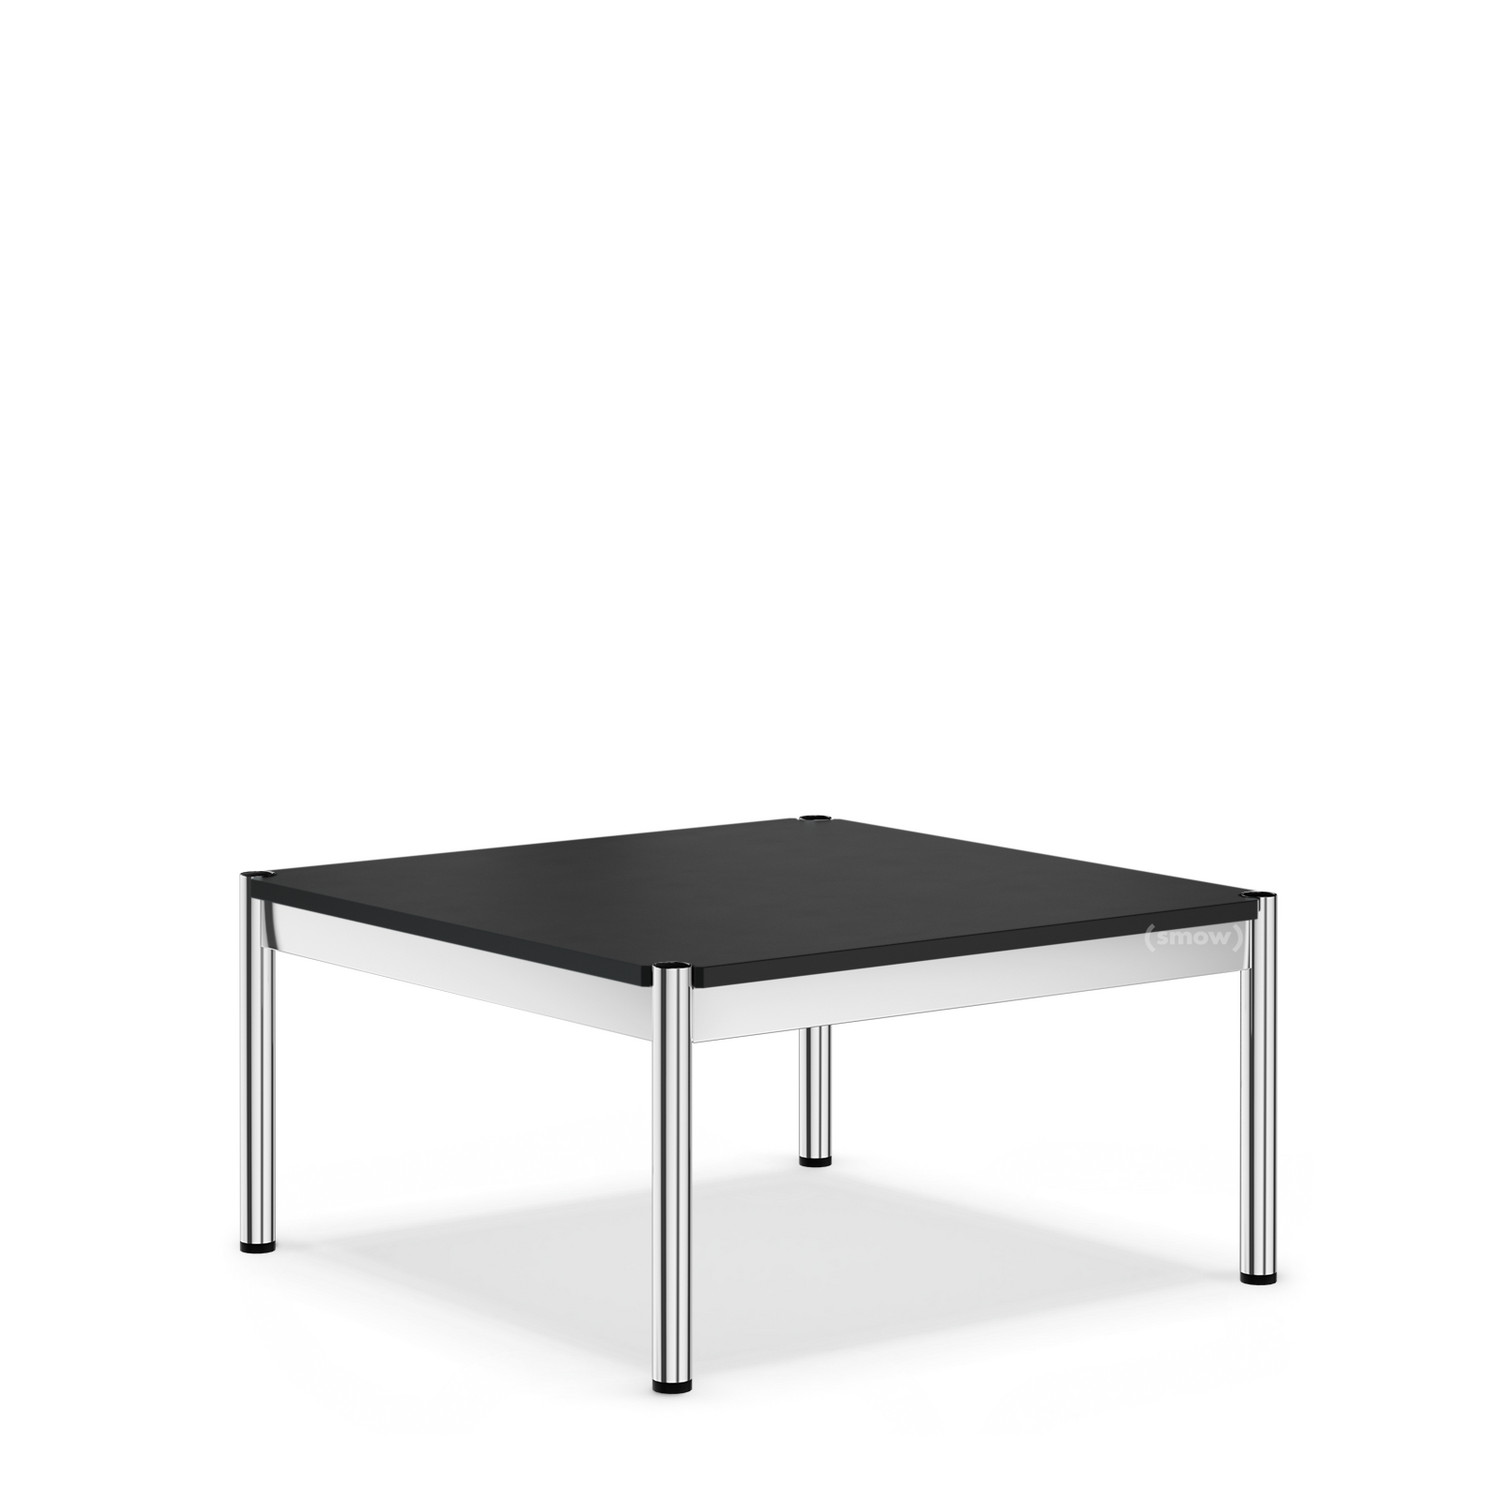 Usm Couchtisch Usm Haller Coffee Table 75 X 75 Cm Linoleum Nero By Fritz